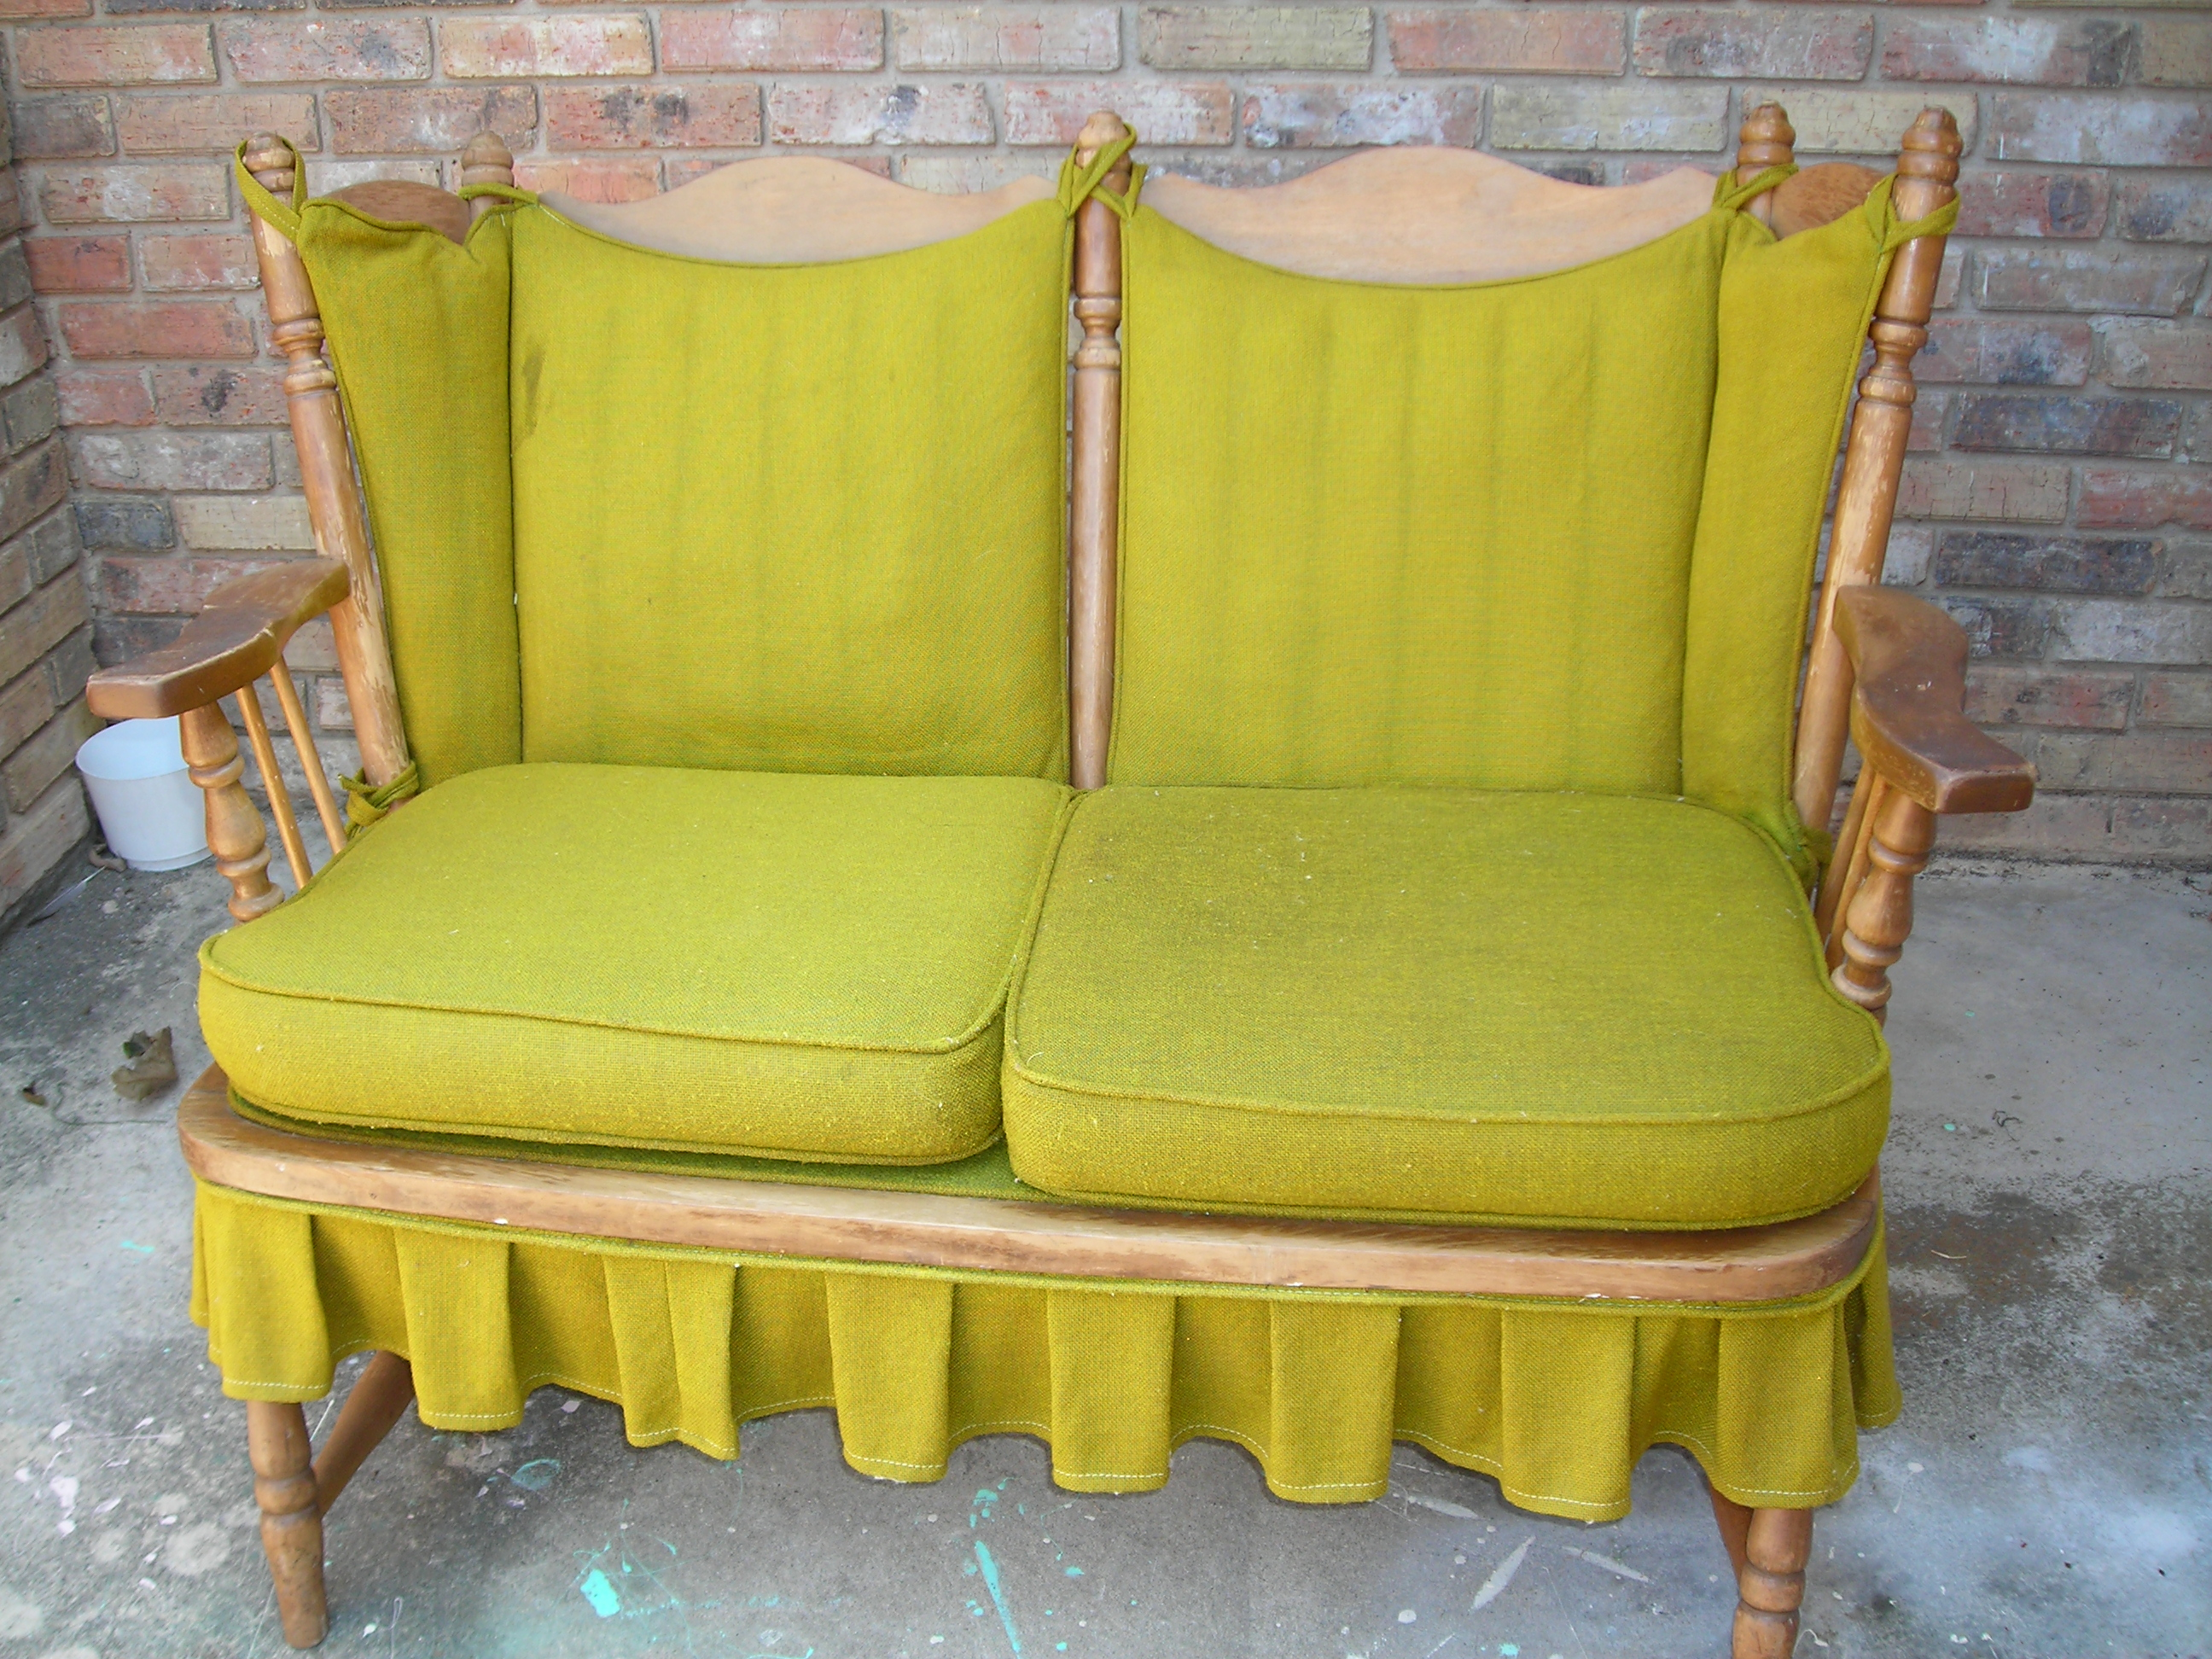 ugh! ugly puke-green cushions on a grrrrreat retro piece!